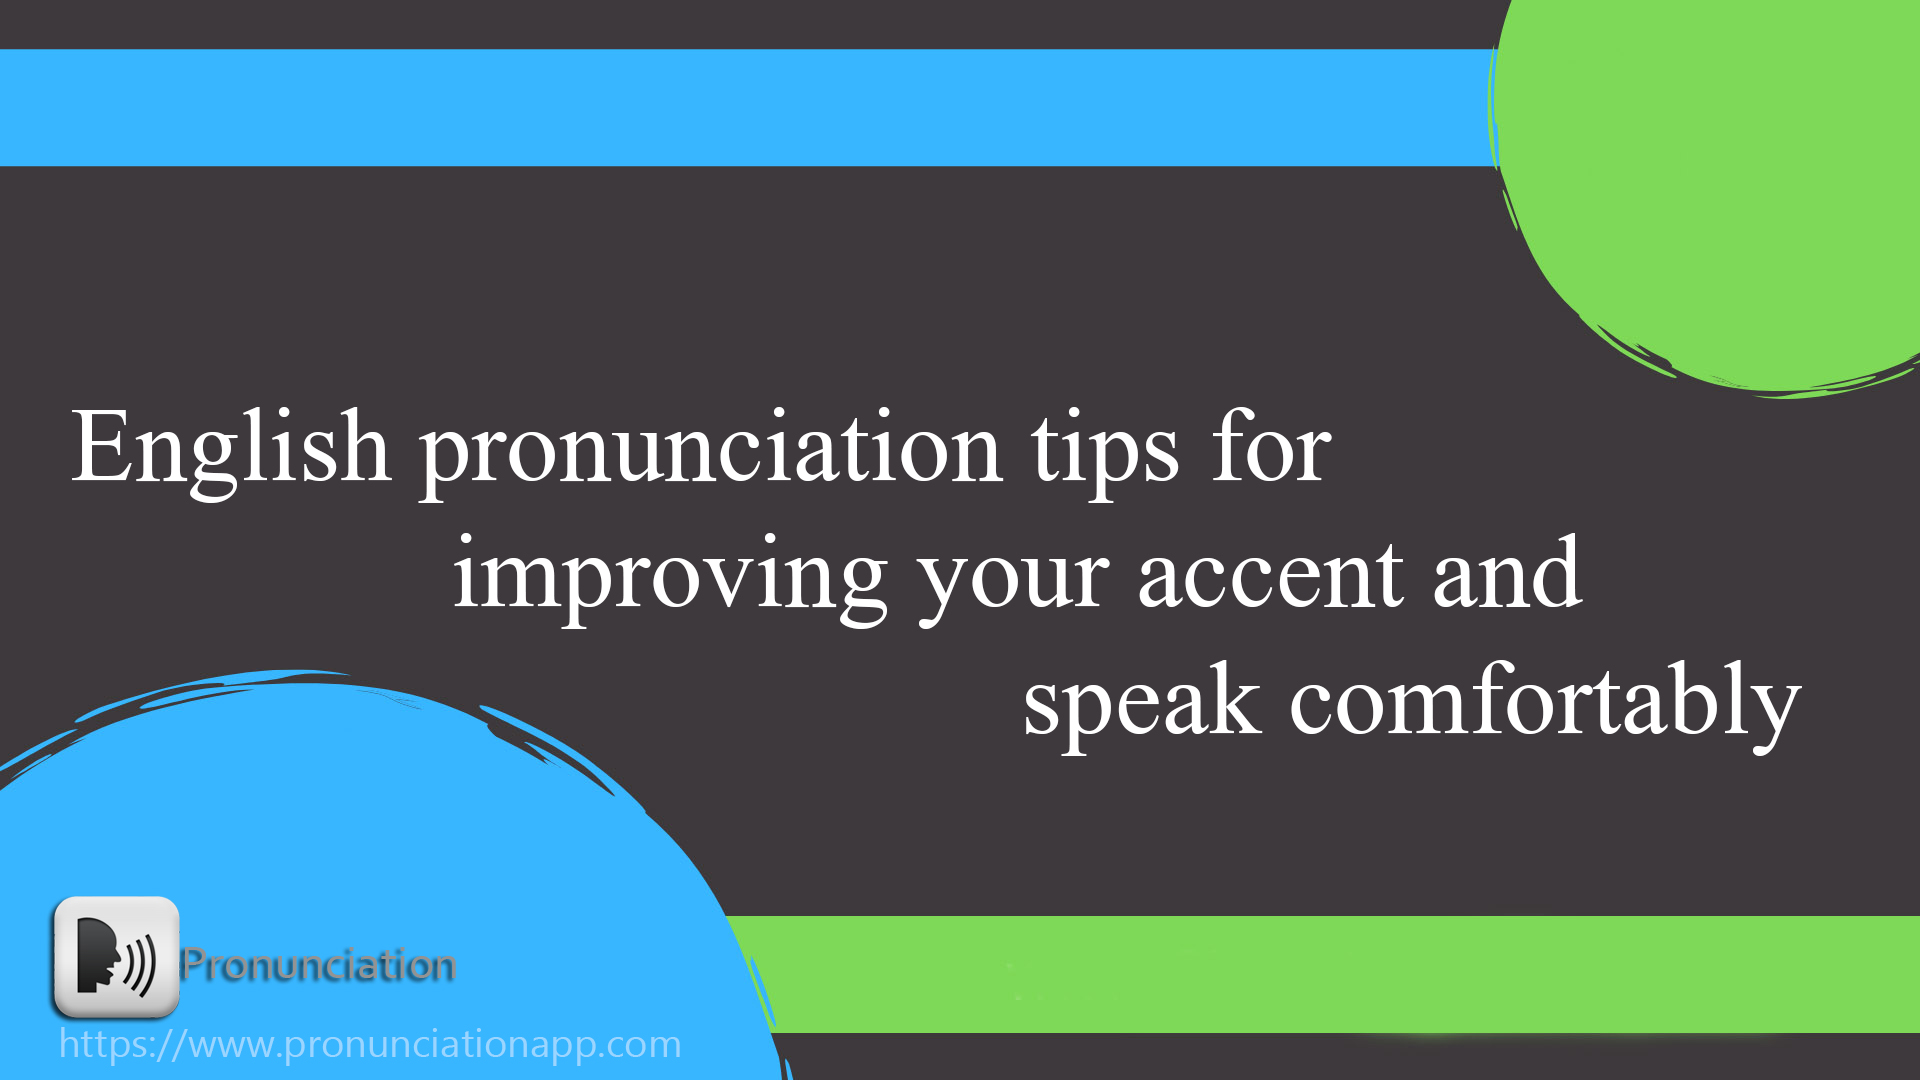 English pronunciation tips for improving your accent and speak comfortably,offline pronunciation app